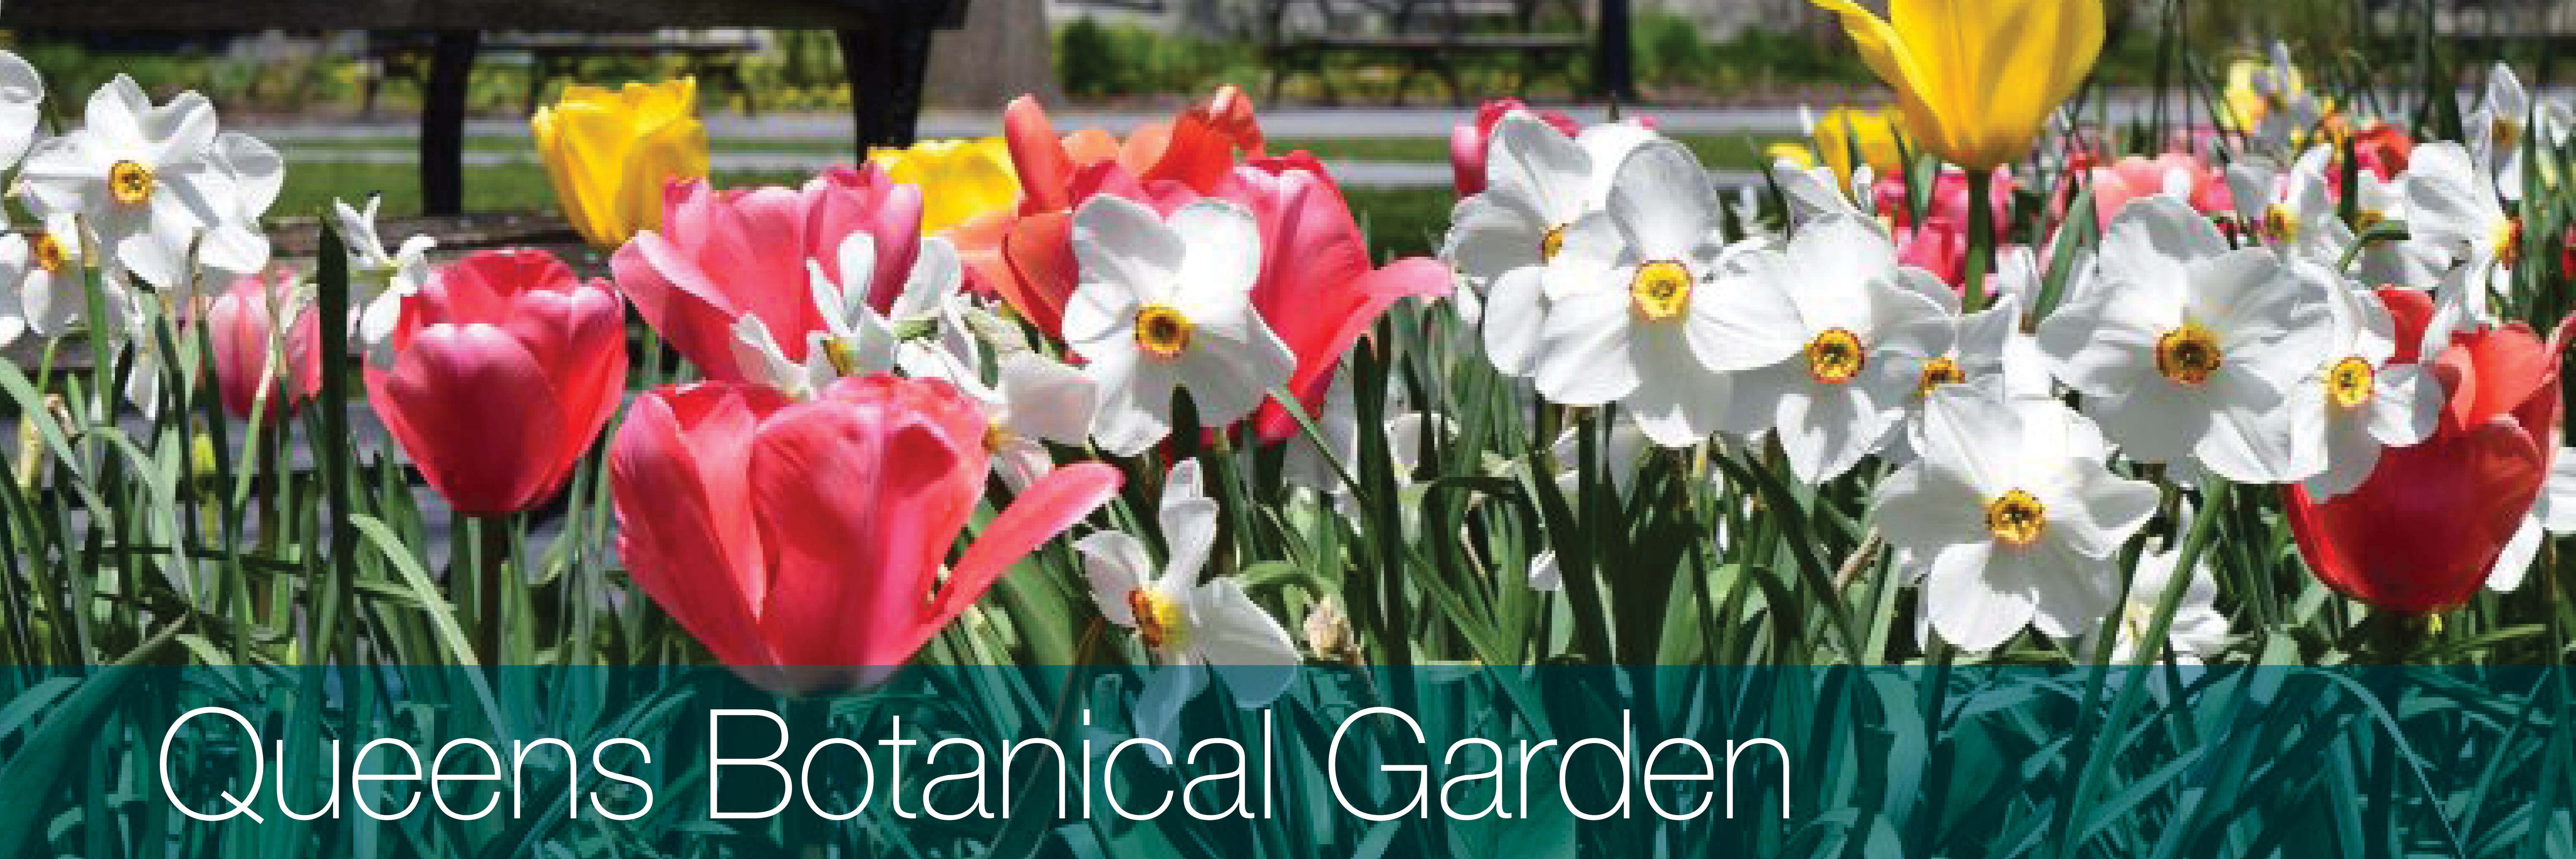 queens-botanical-garden-tulips-and-daffodils